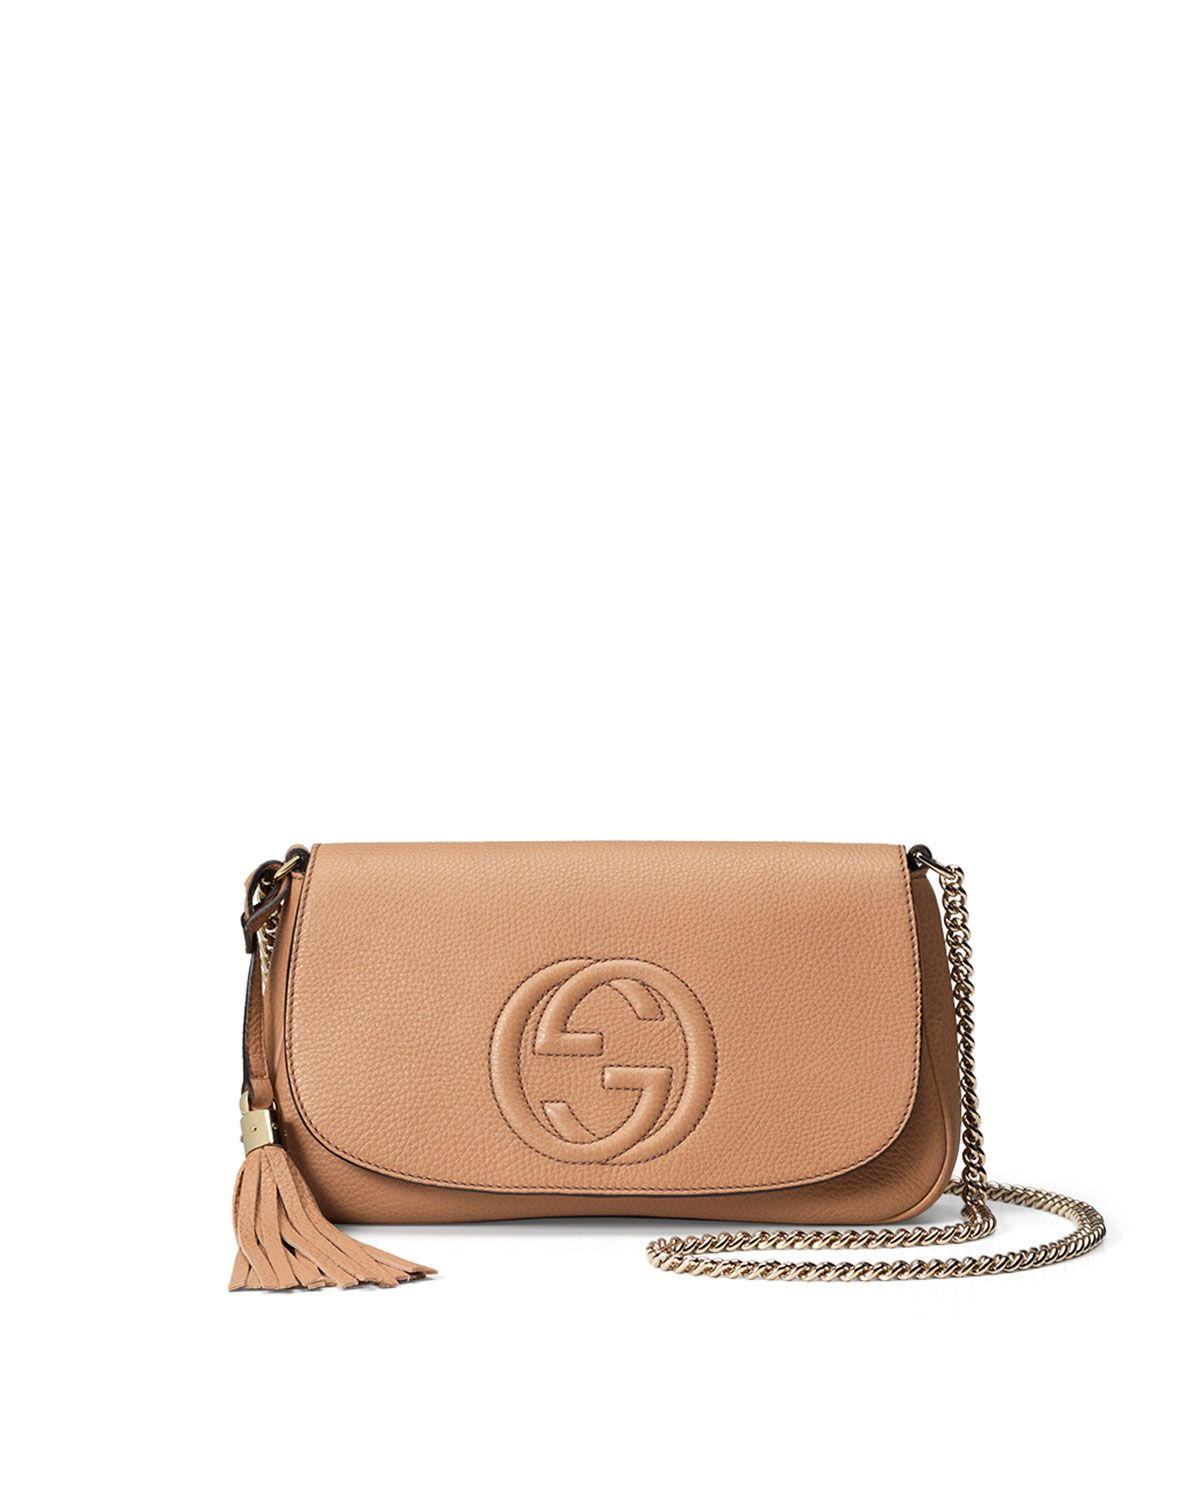 beee946a5760 Gucci Soho Medium Crossbody Bag